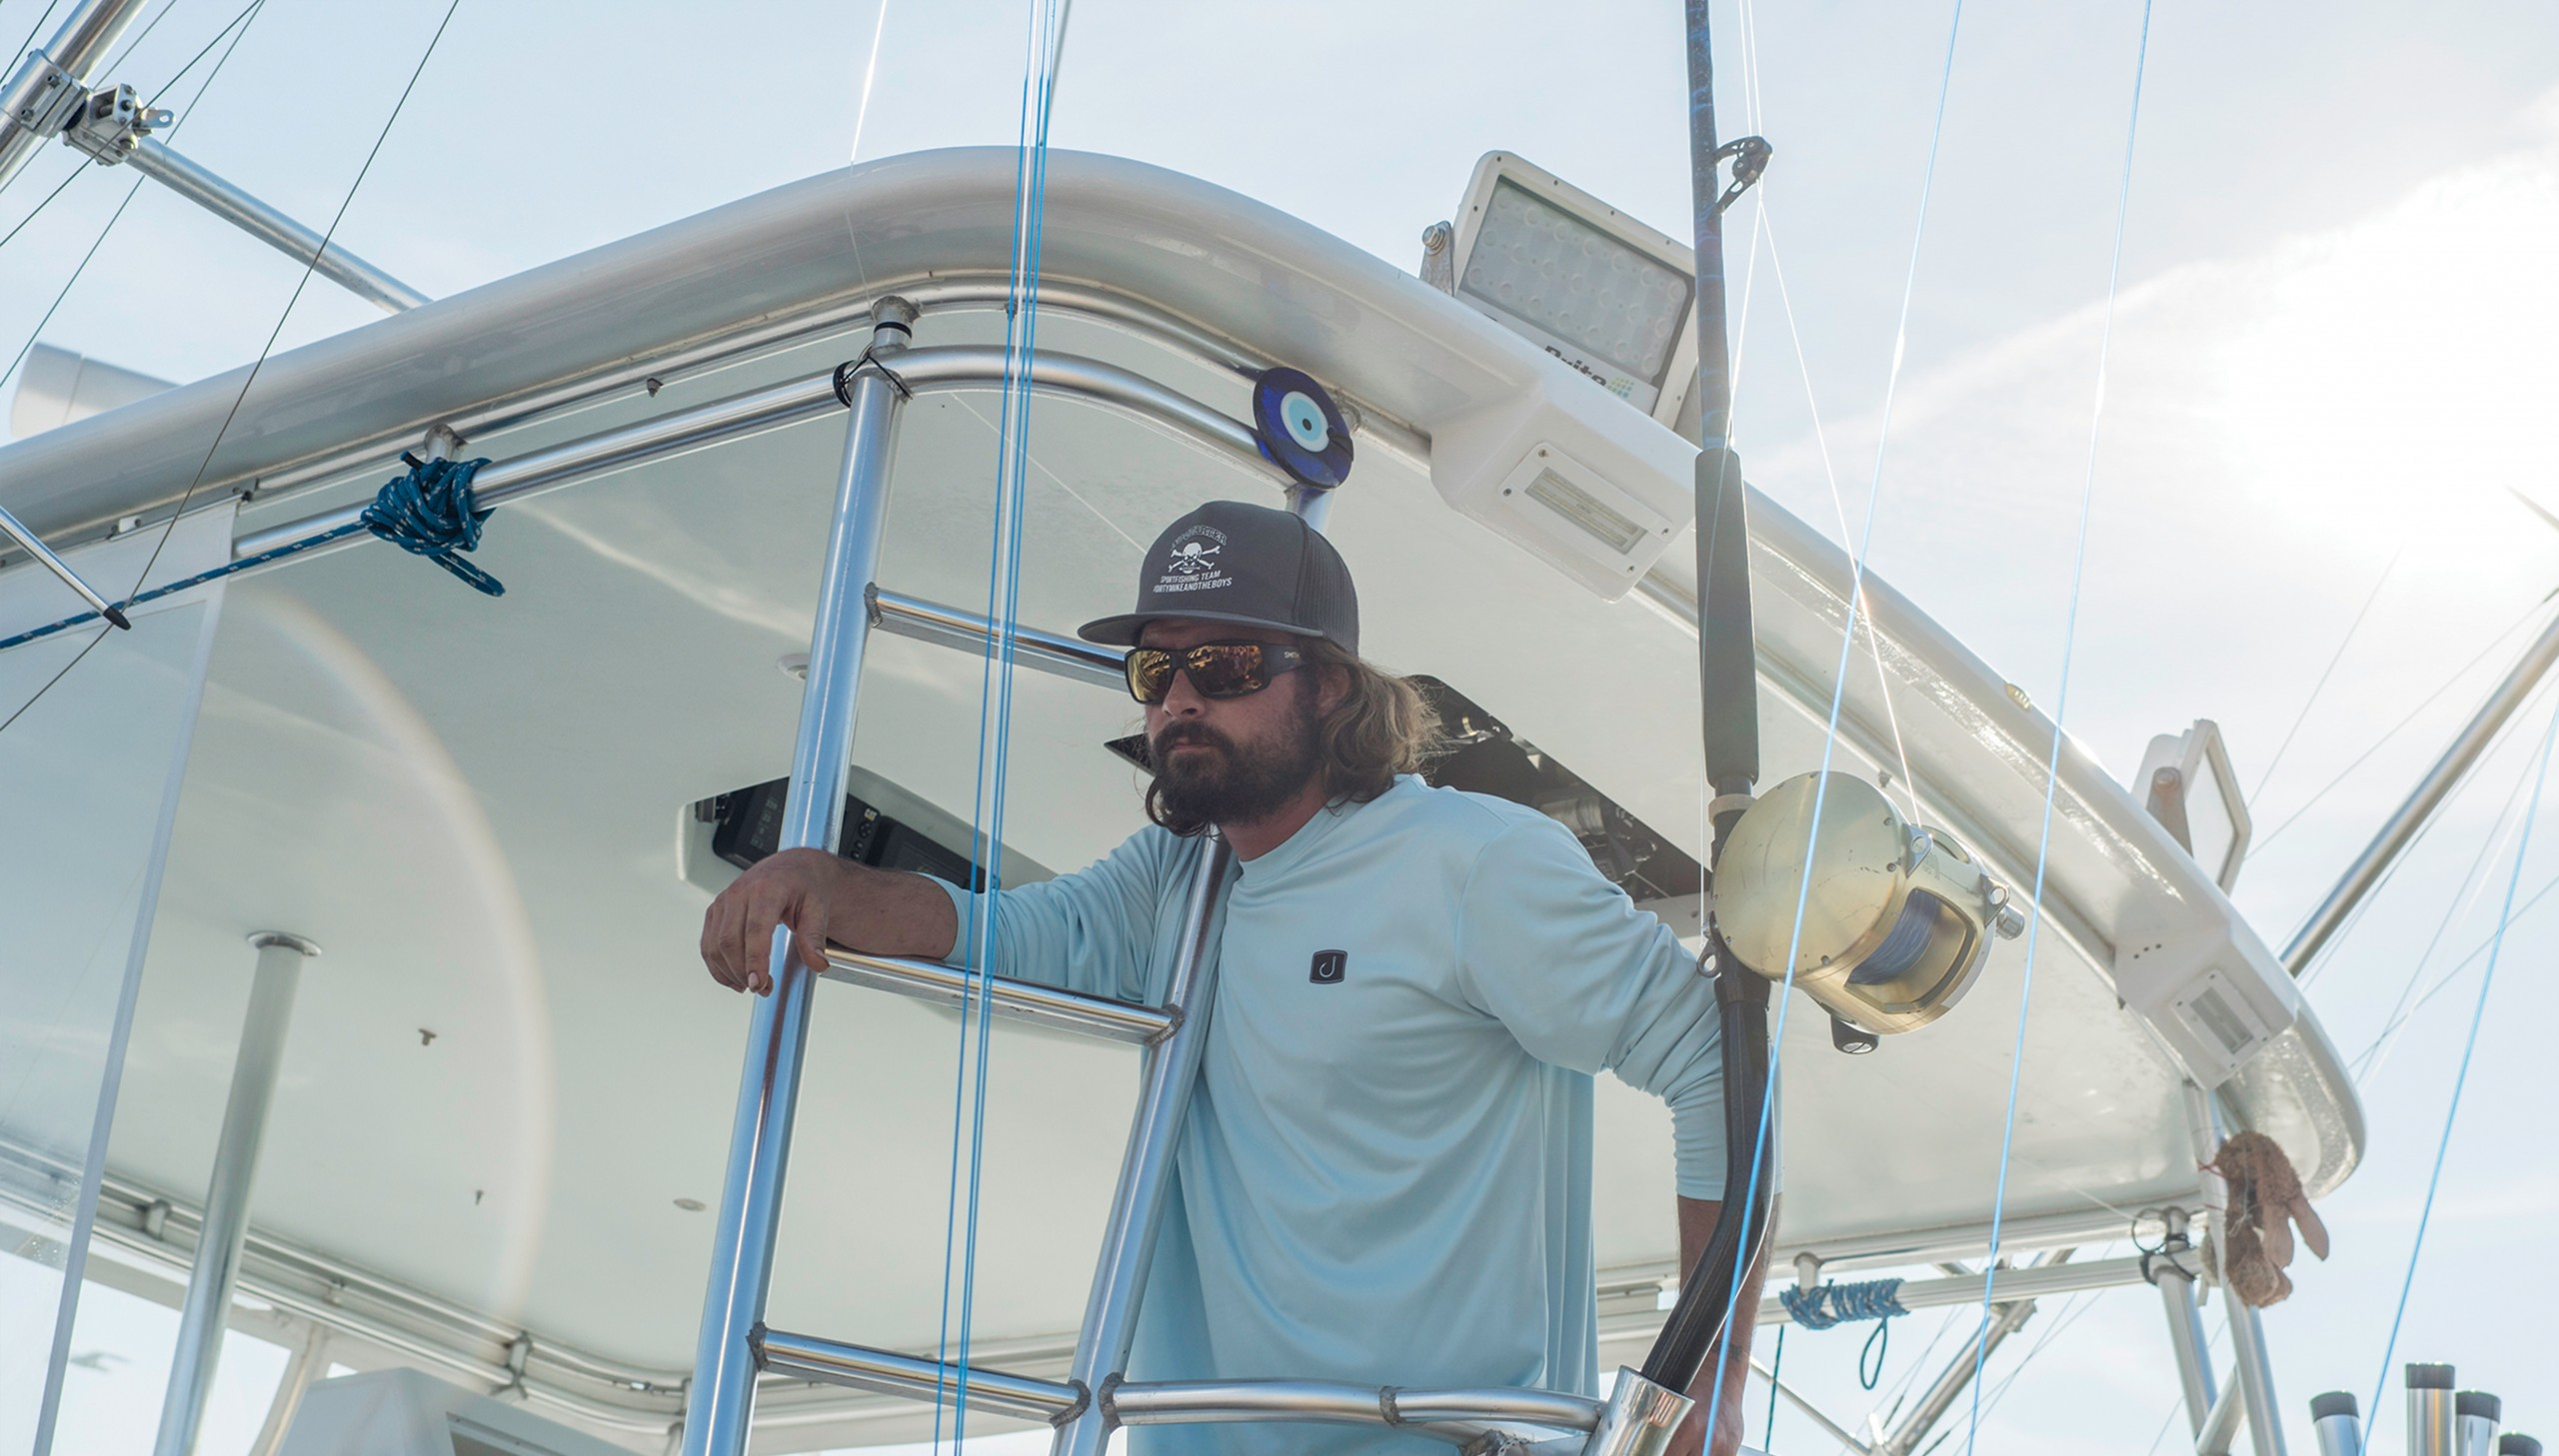 captain Kyle Peet standing on his boat